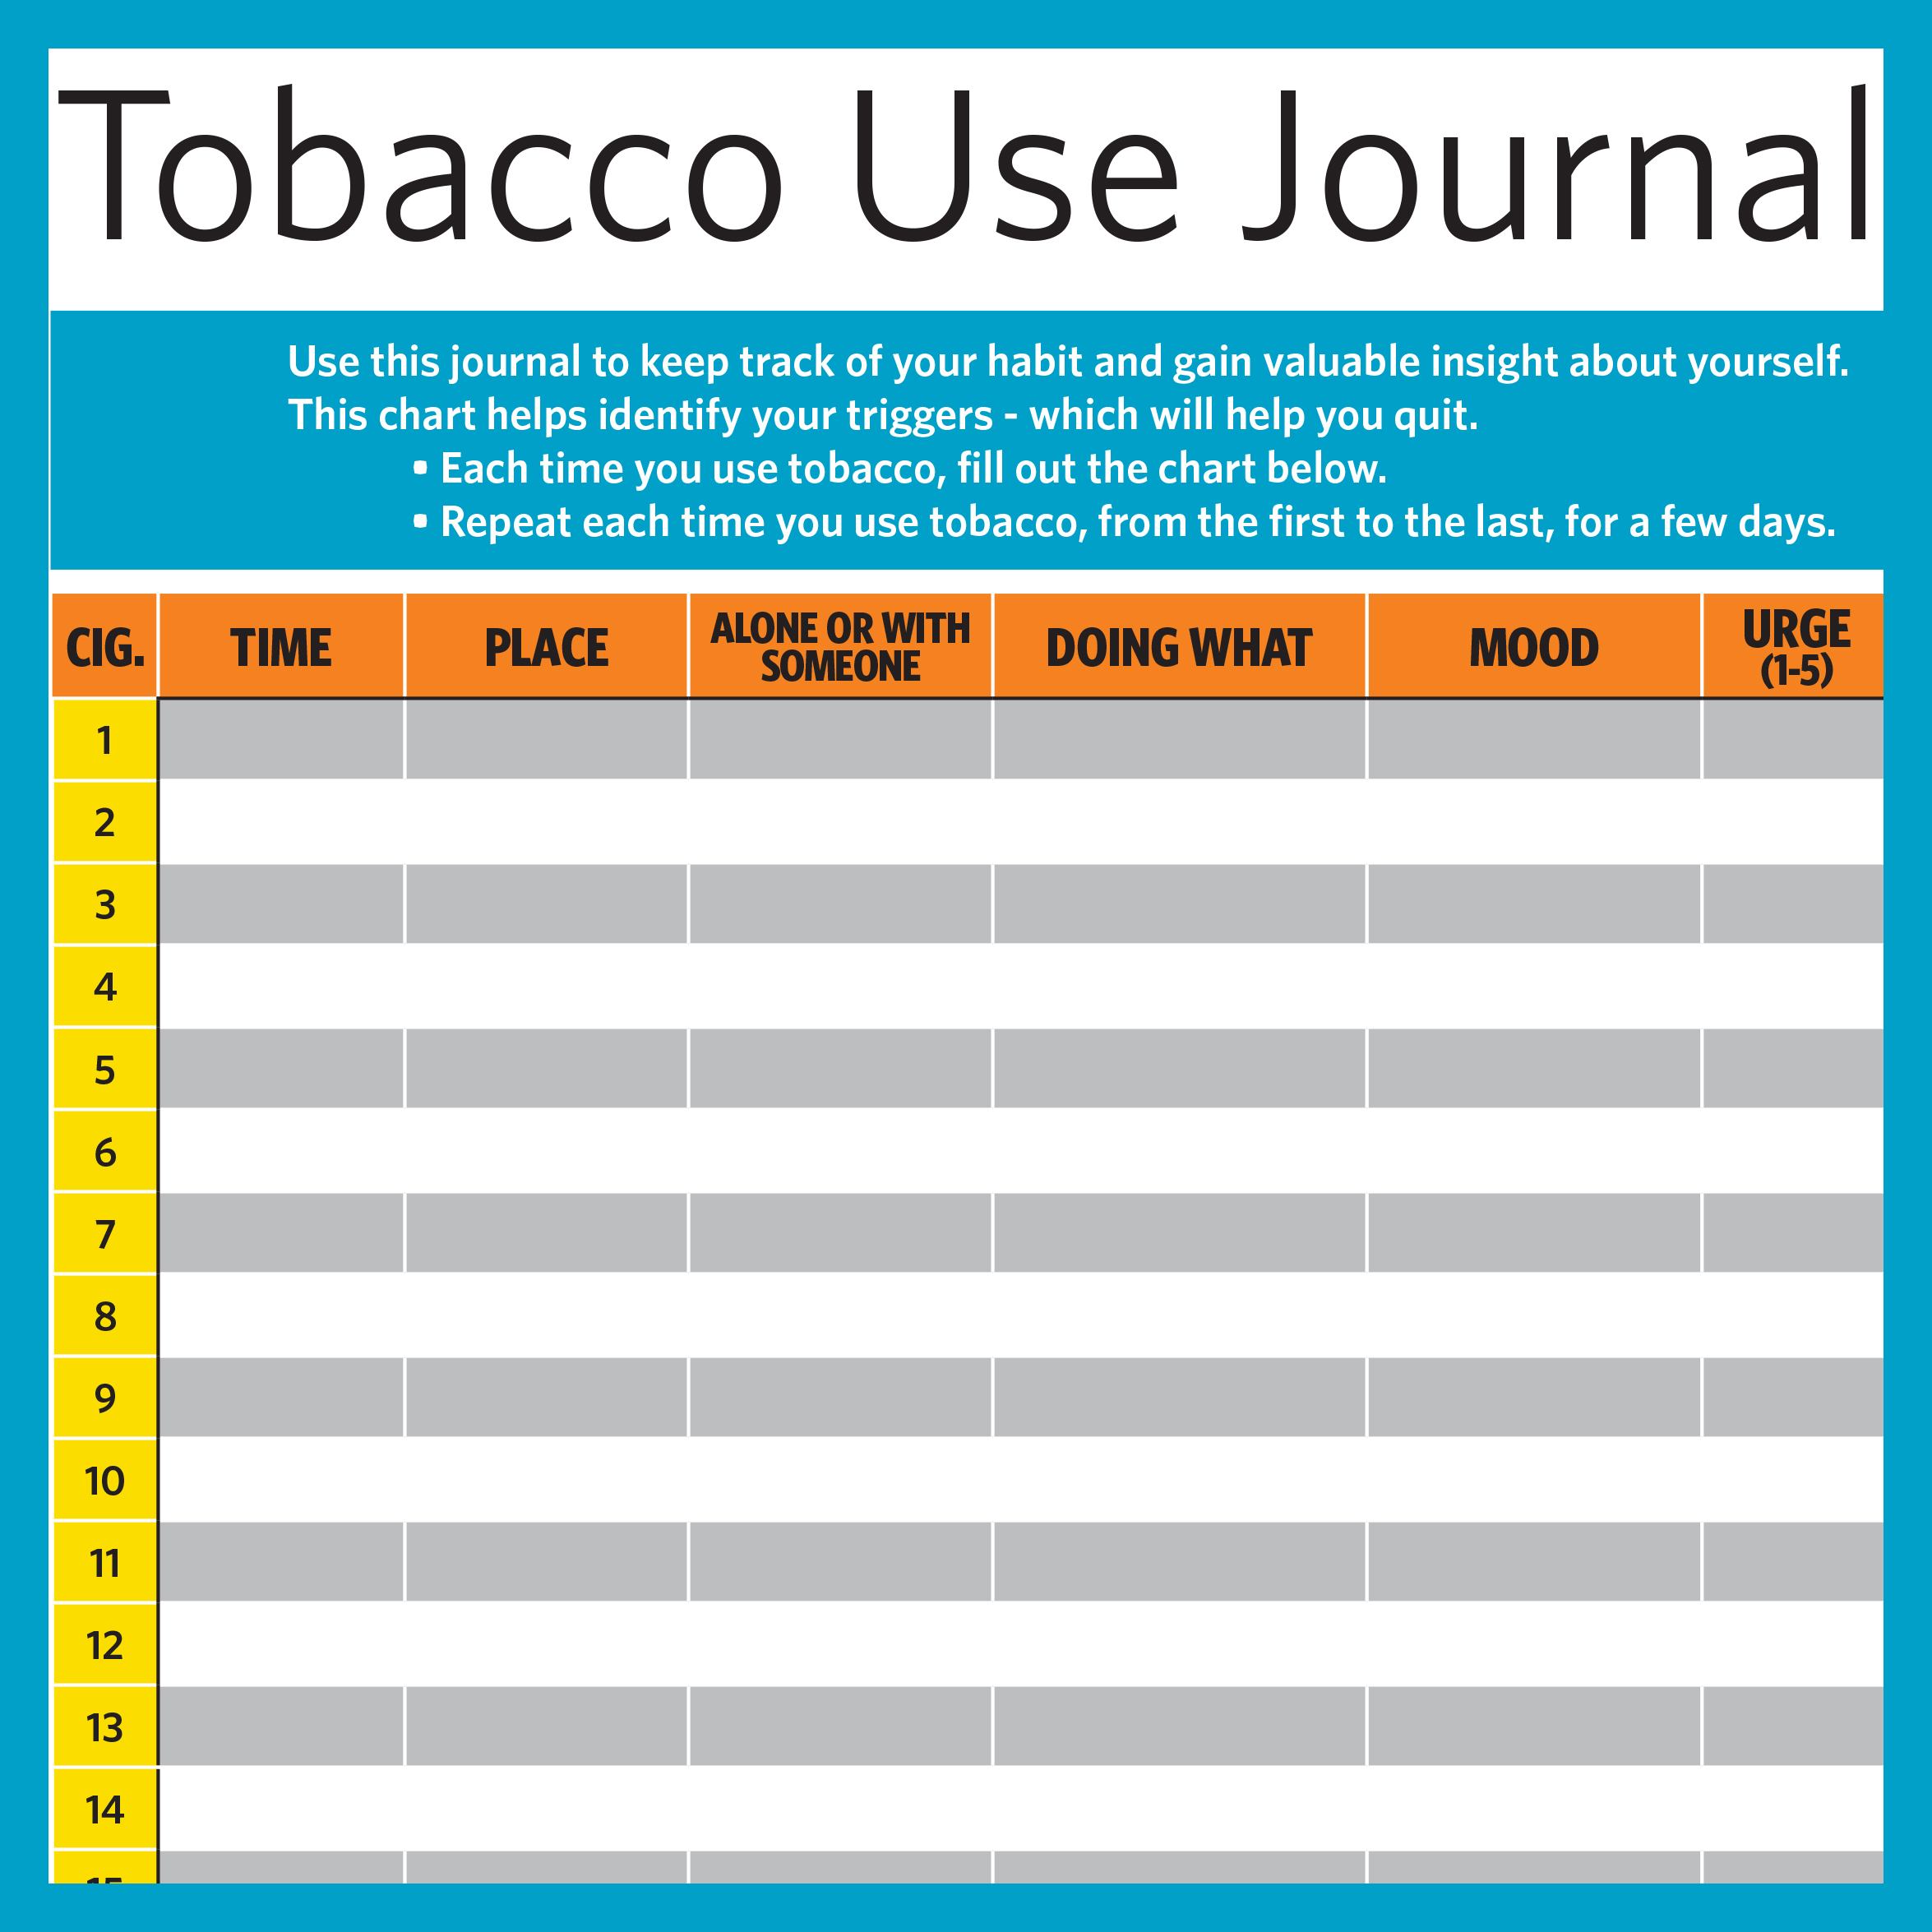 Tobacco Use Journal - Extra journal pages to keep track of your smoking.